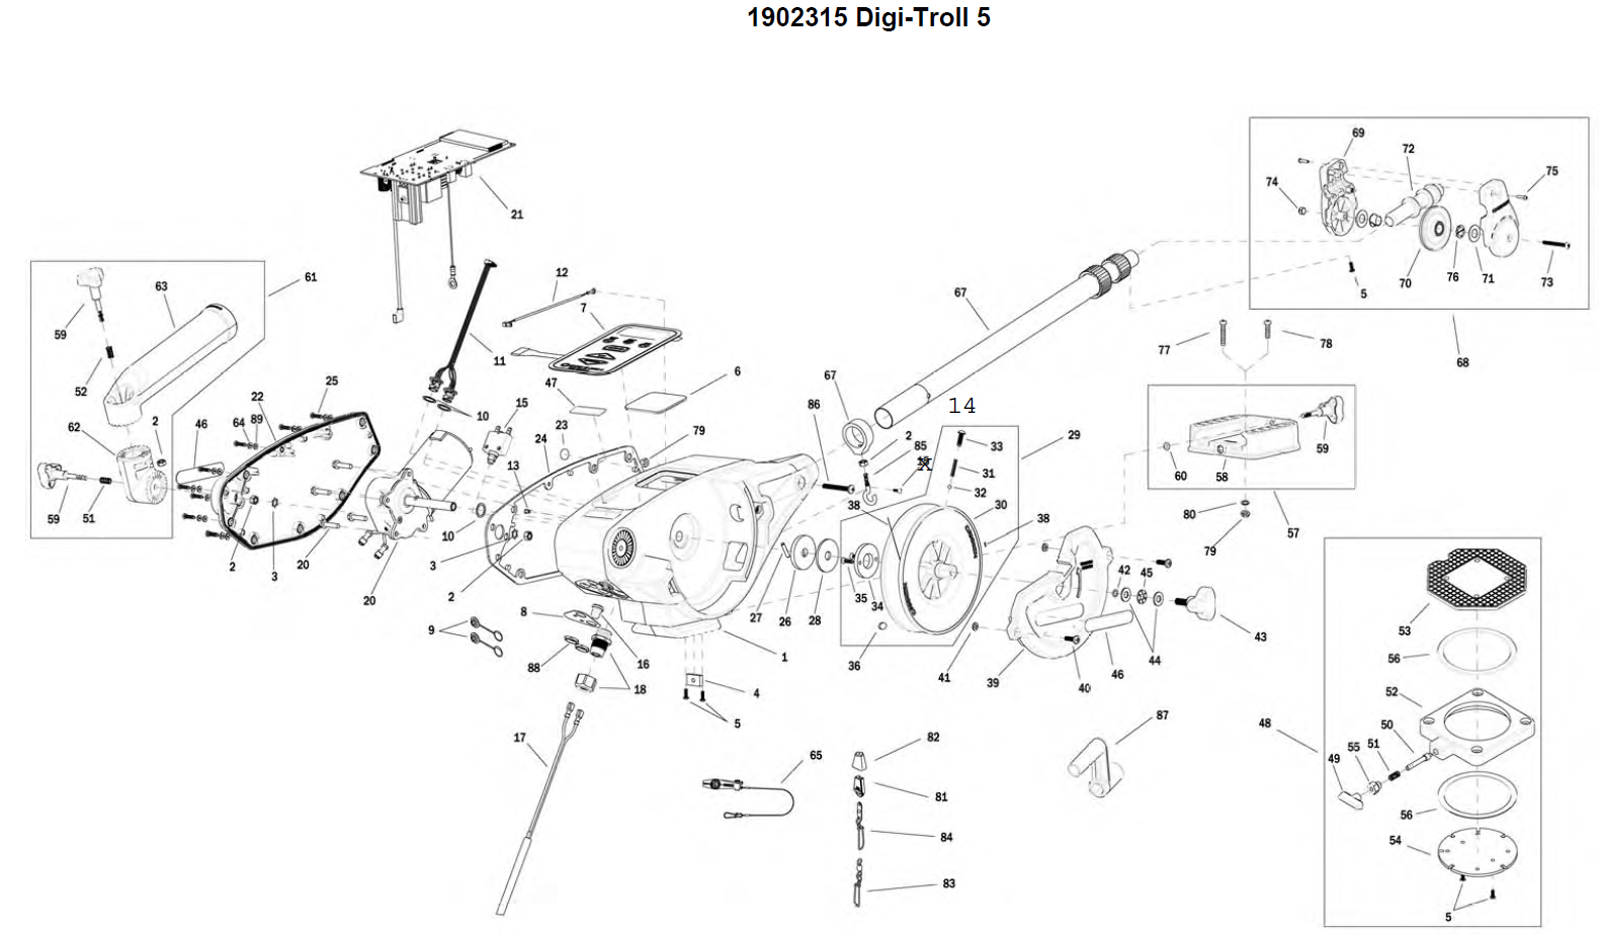 order cannon digi troll 5 electric downrigger parts from fish307 Led Lights Wiring Diagram expand product diagram